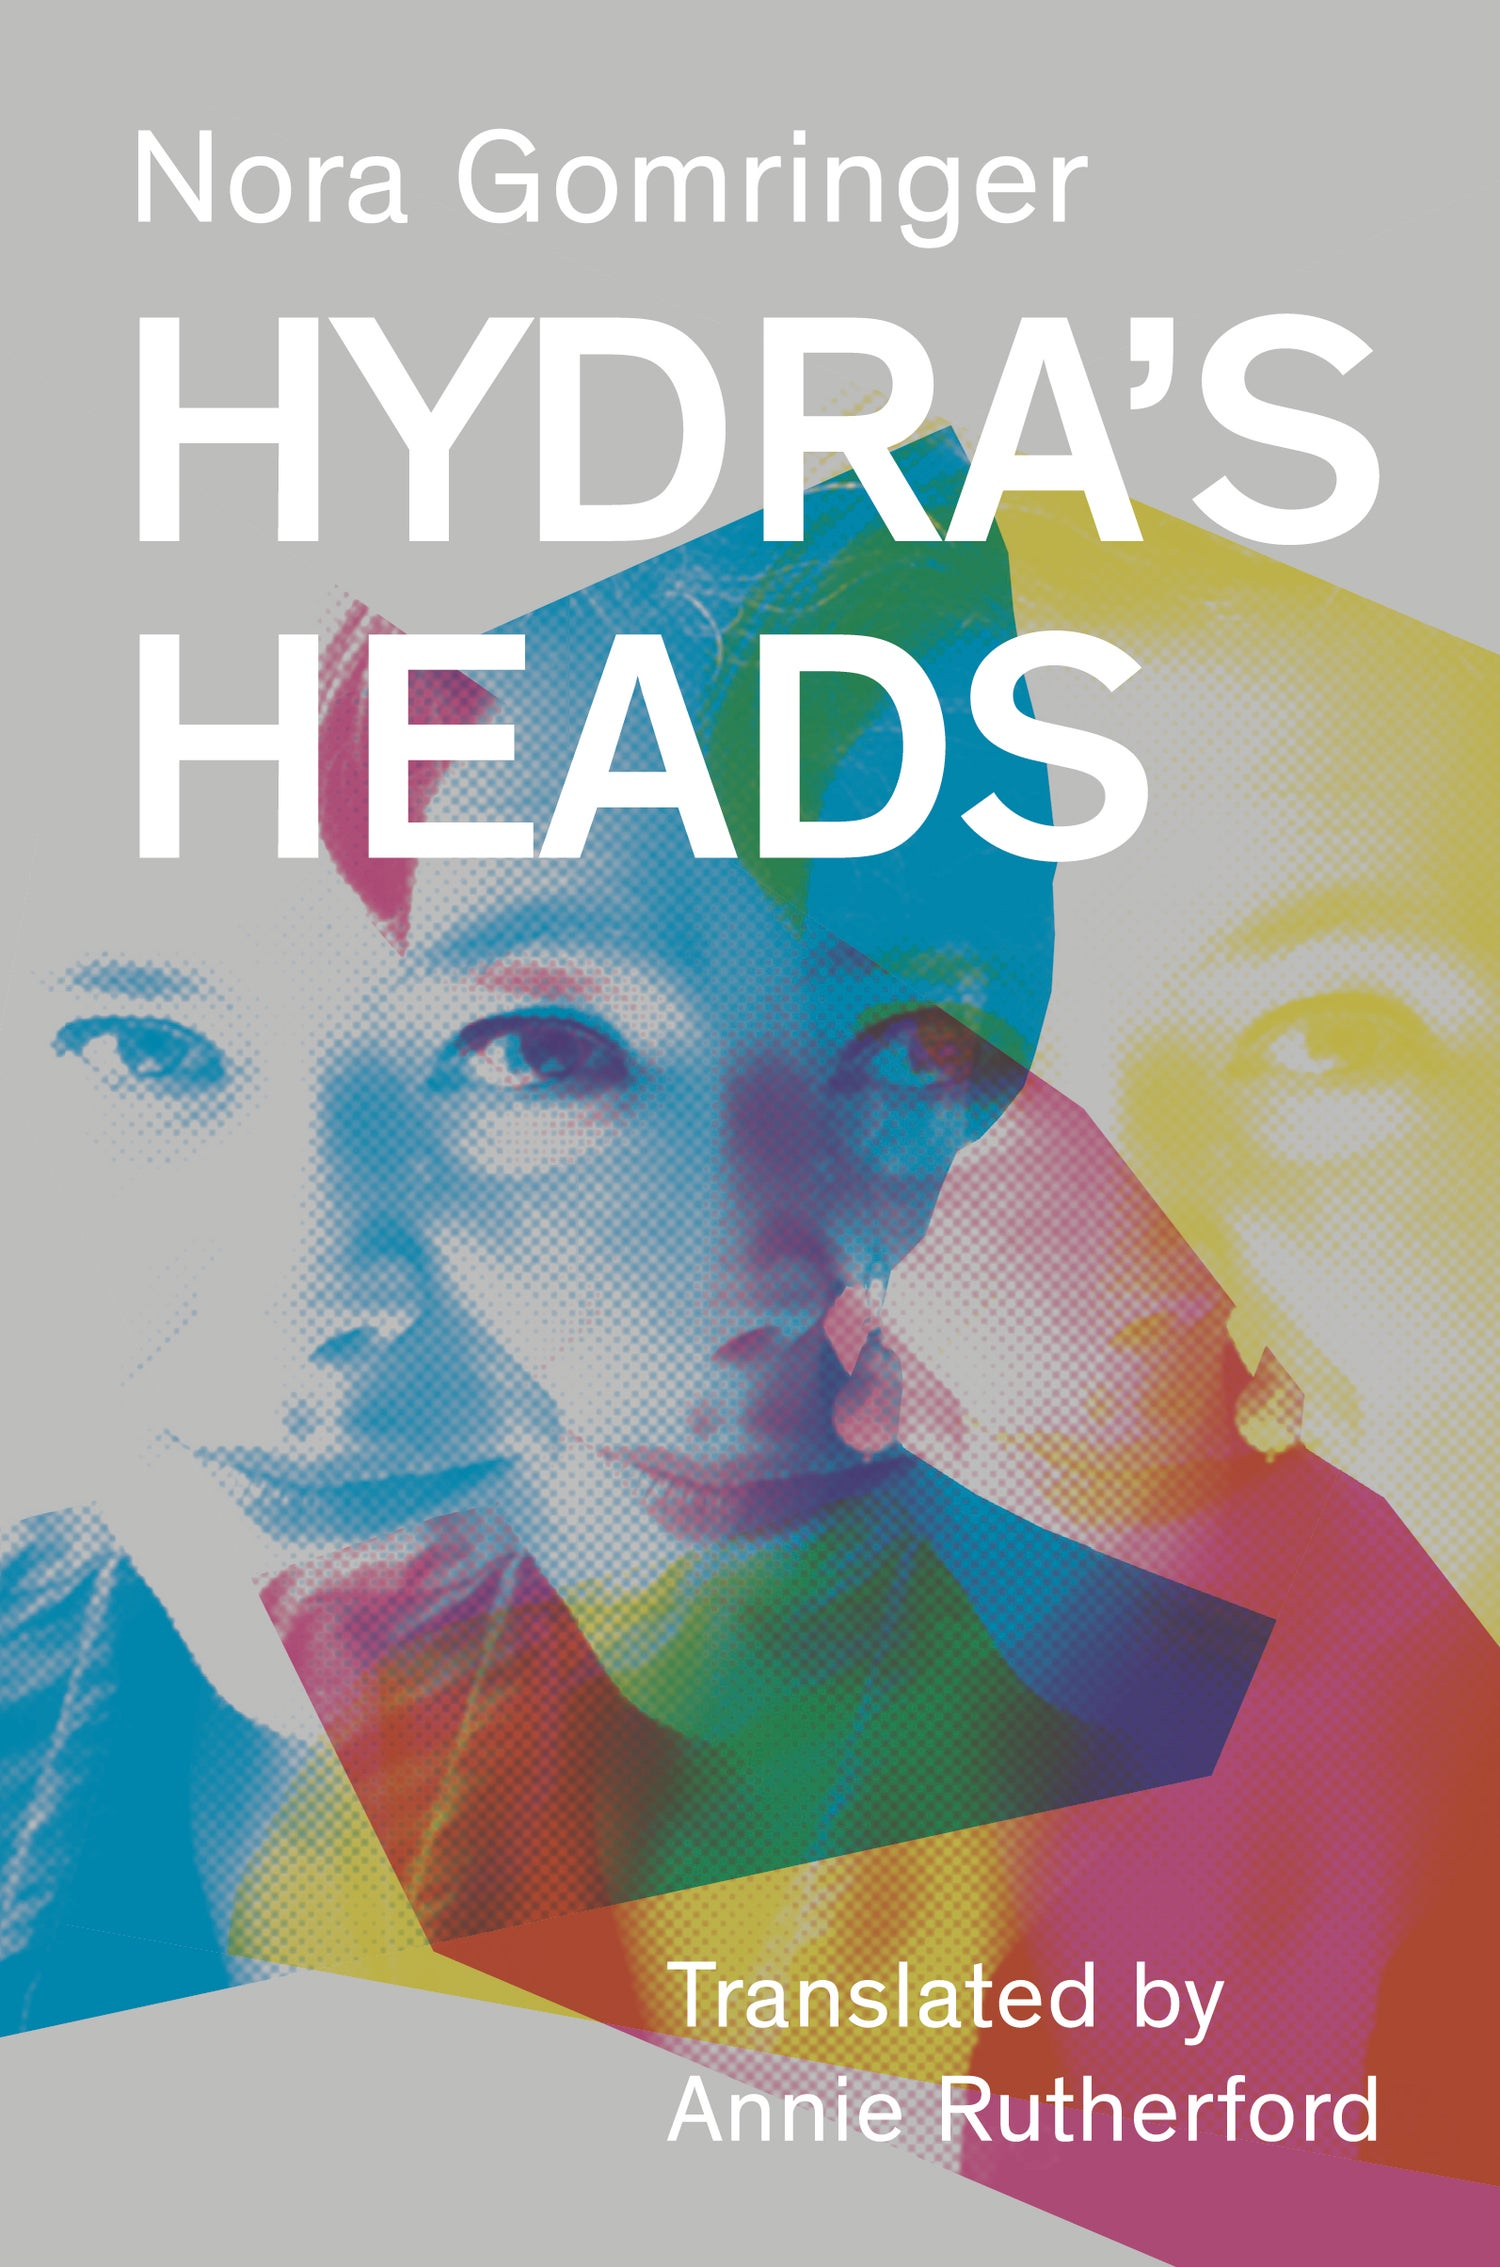 Image of Hydra's Heads by Nora Gomringer